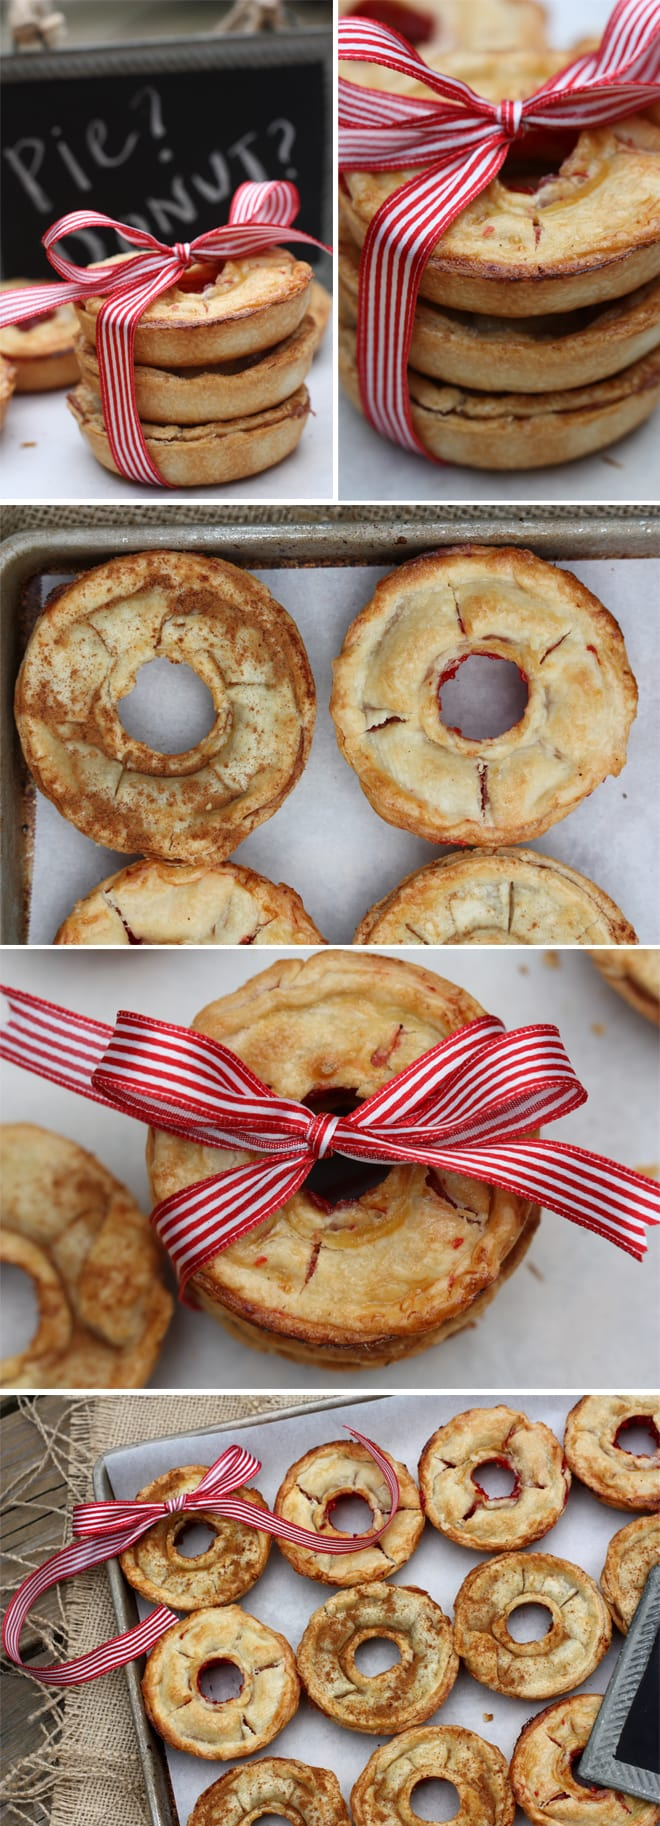 Donut Shaped Mini Cherry and Apple Pies